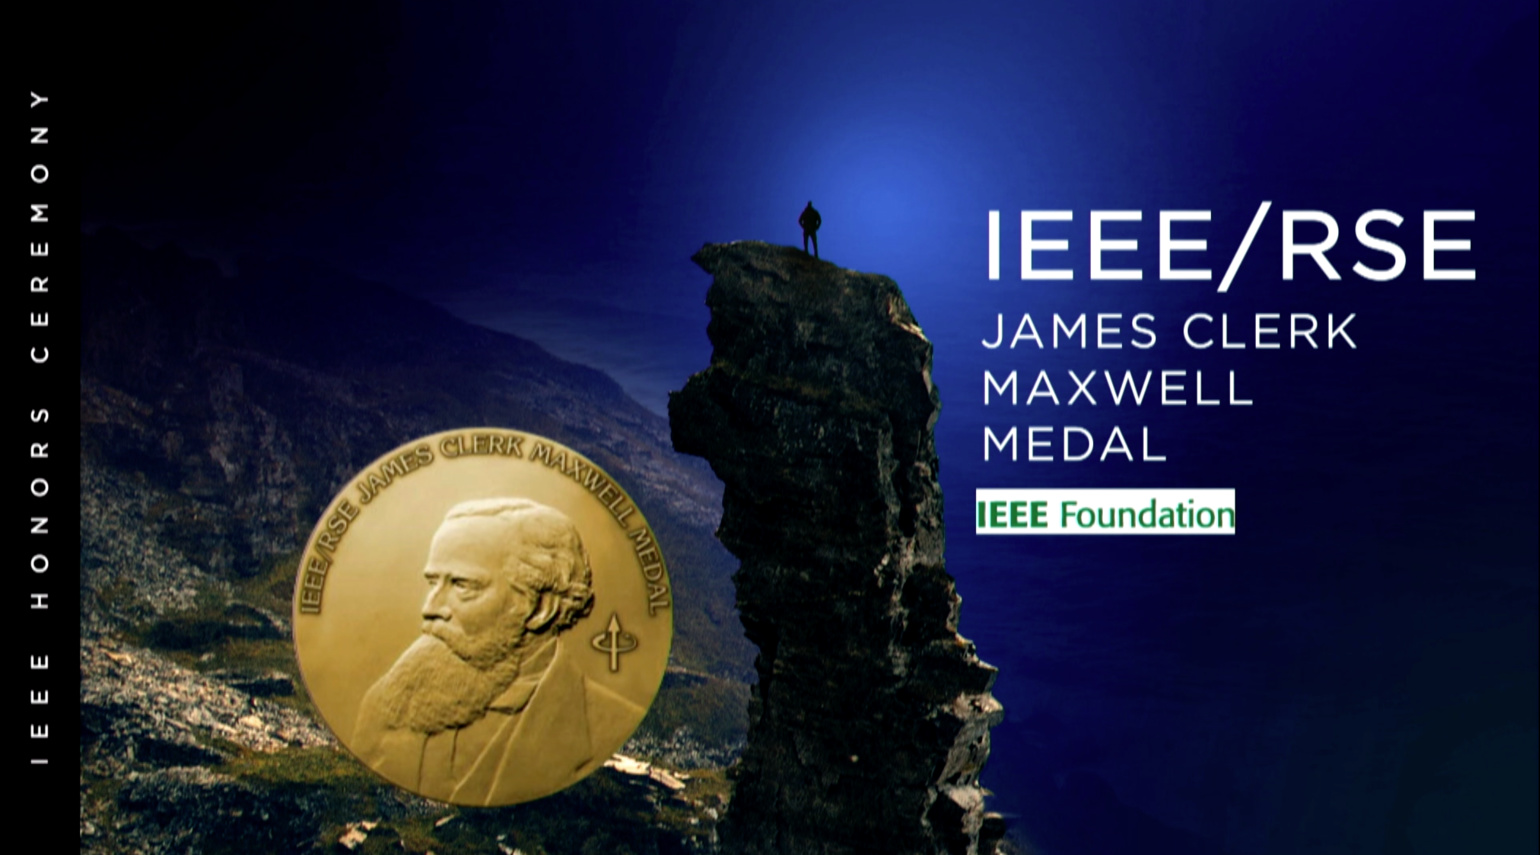 IEEE/RSE James Clerk Maxwell Medal - Thomas Haug and Philippe Dupuis - 2018 IEEE Honors Ceremony